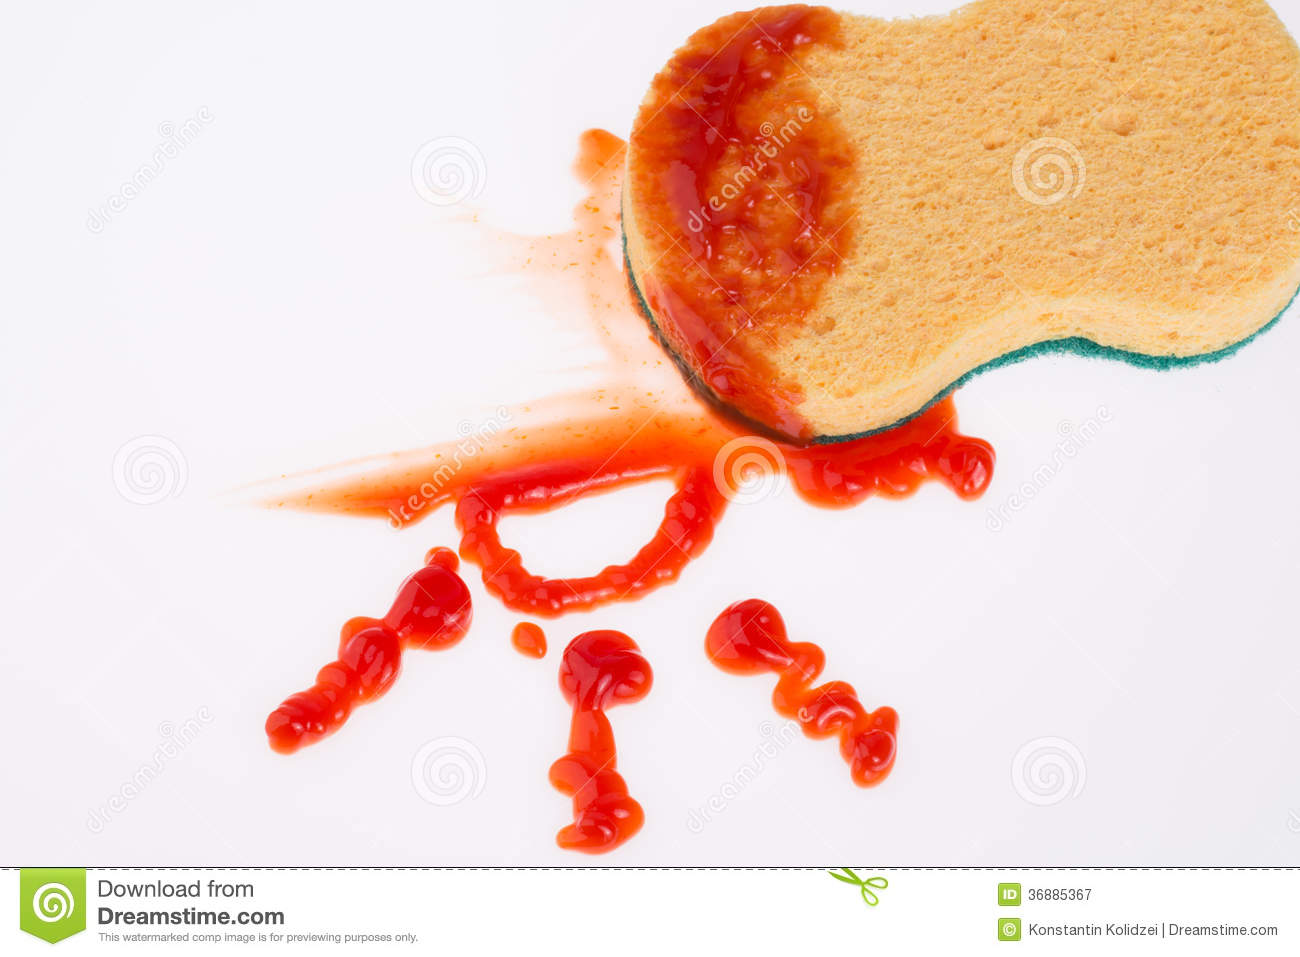 ketchup stain royalty free stock photography image 36885367. Black Bedroom Furniture Sets. Home Design Ideas